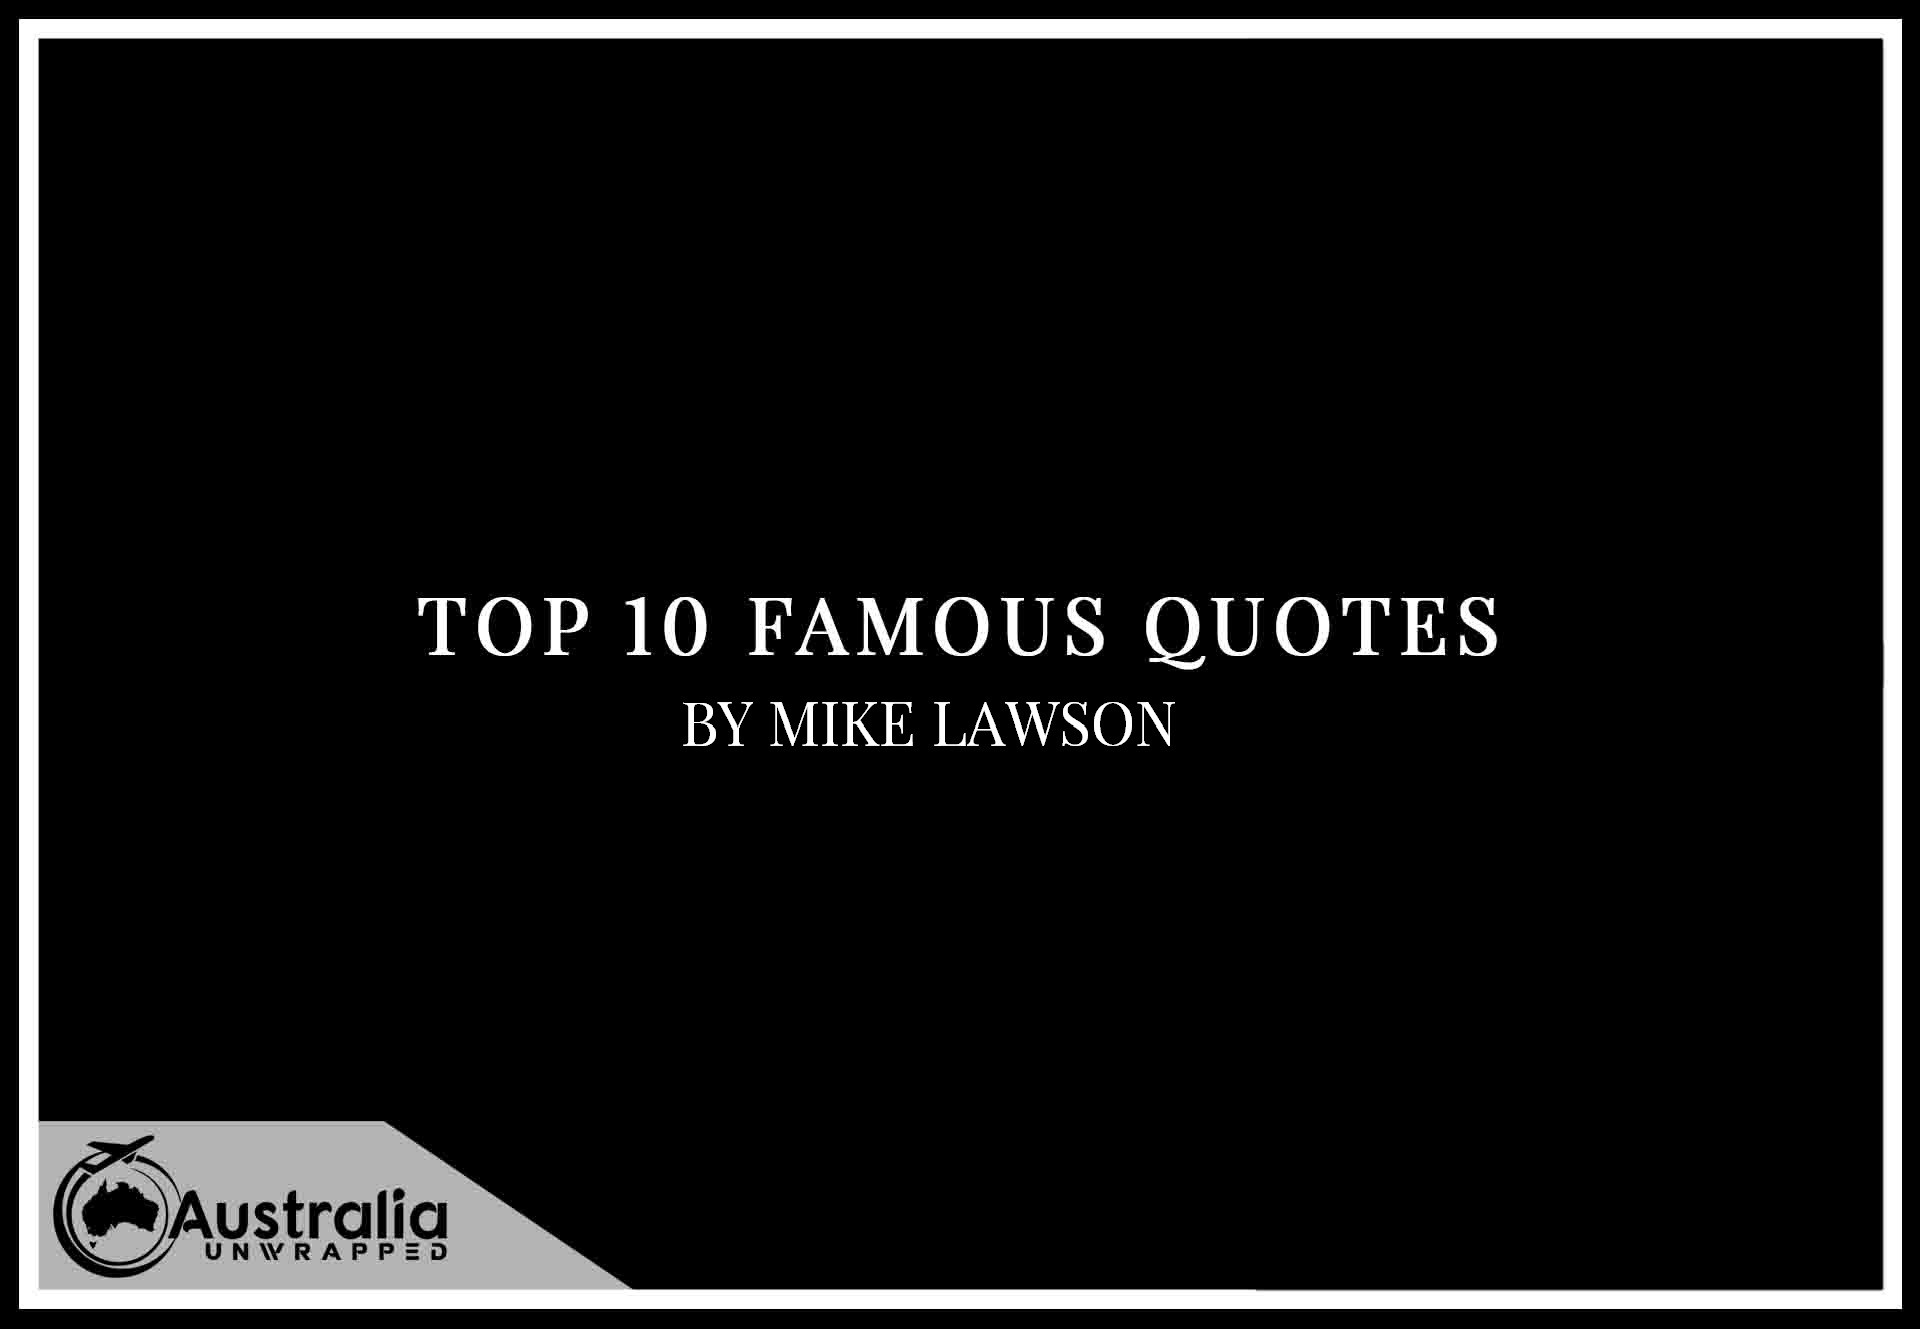 Top 10 Famous Quotes by Author Mike Lawson